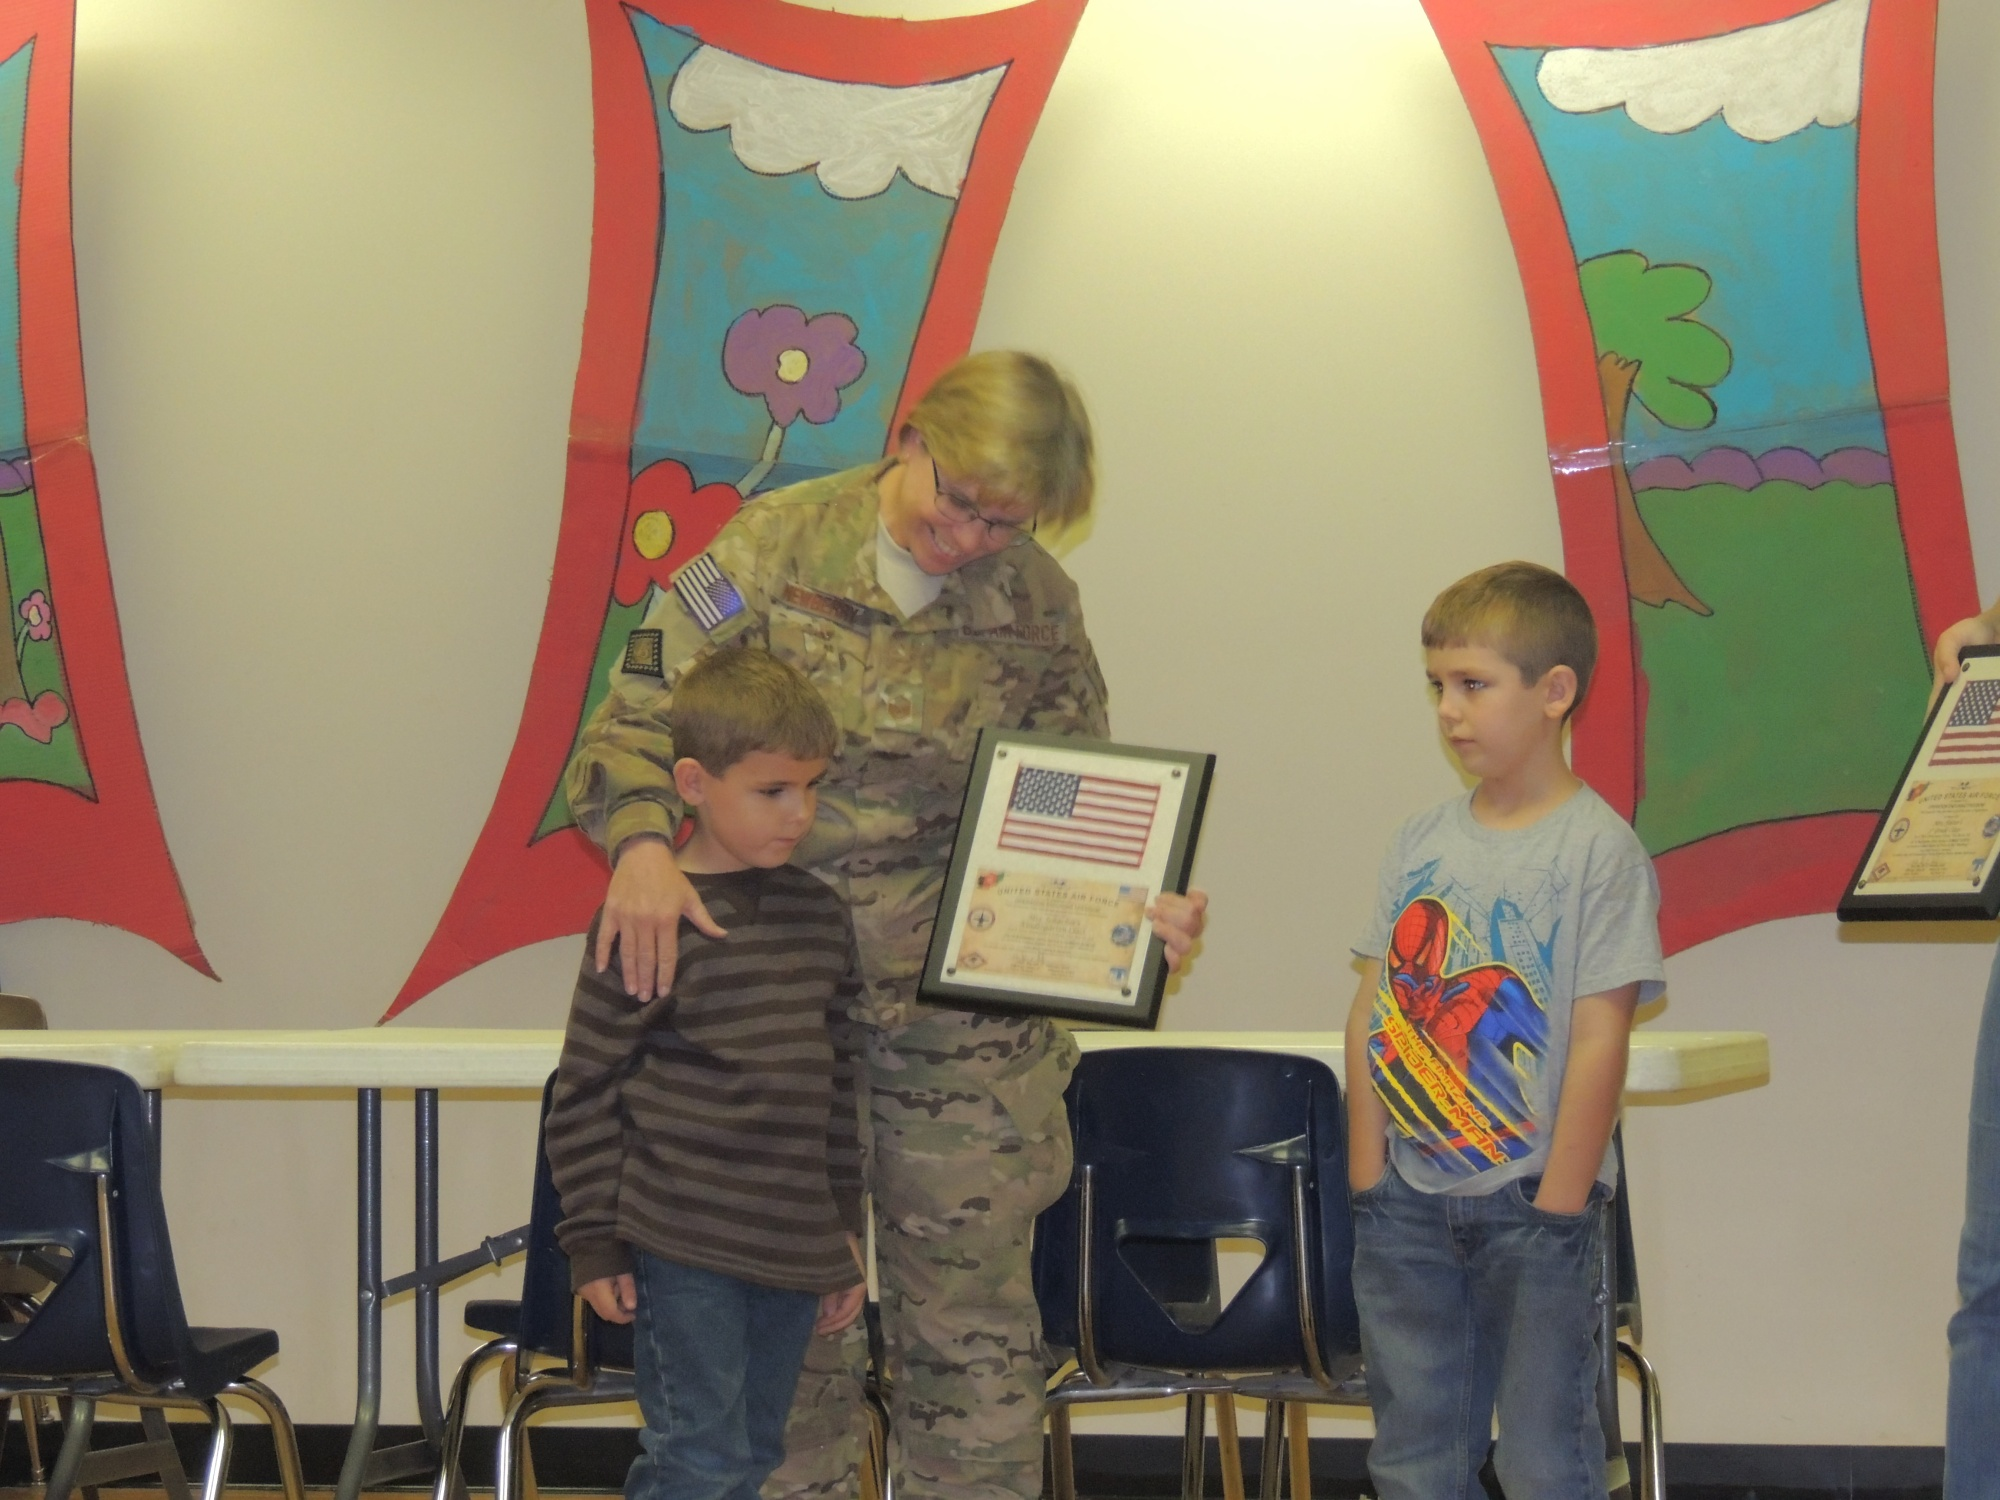 MSgt. Tammy Newberry surprised her two grandsons Xander and Connor at Parkview Elementary in Van Buren